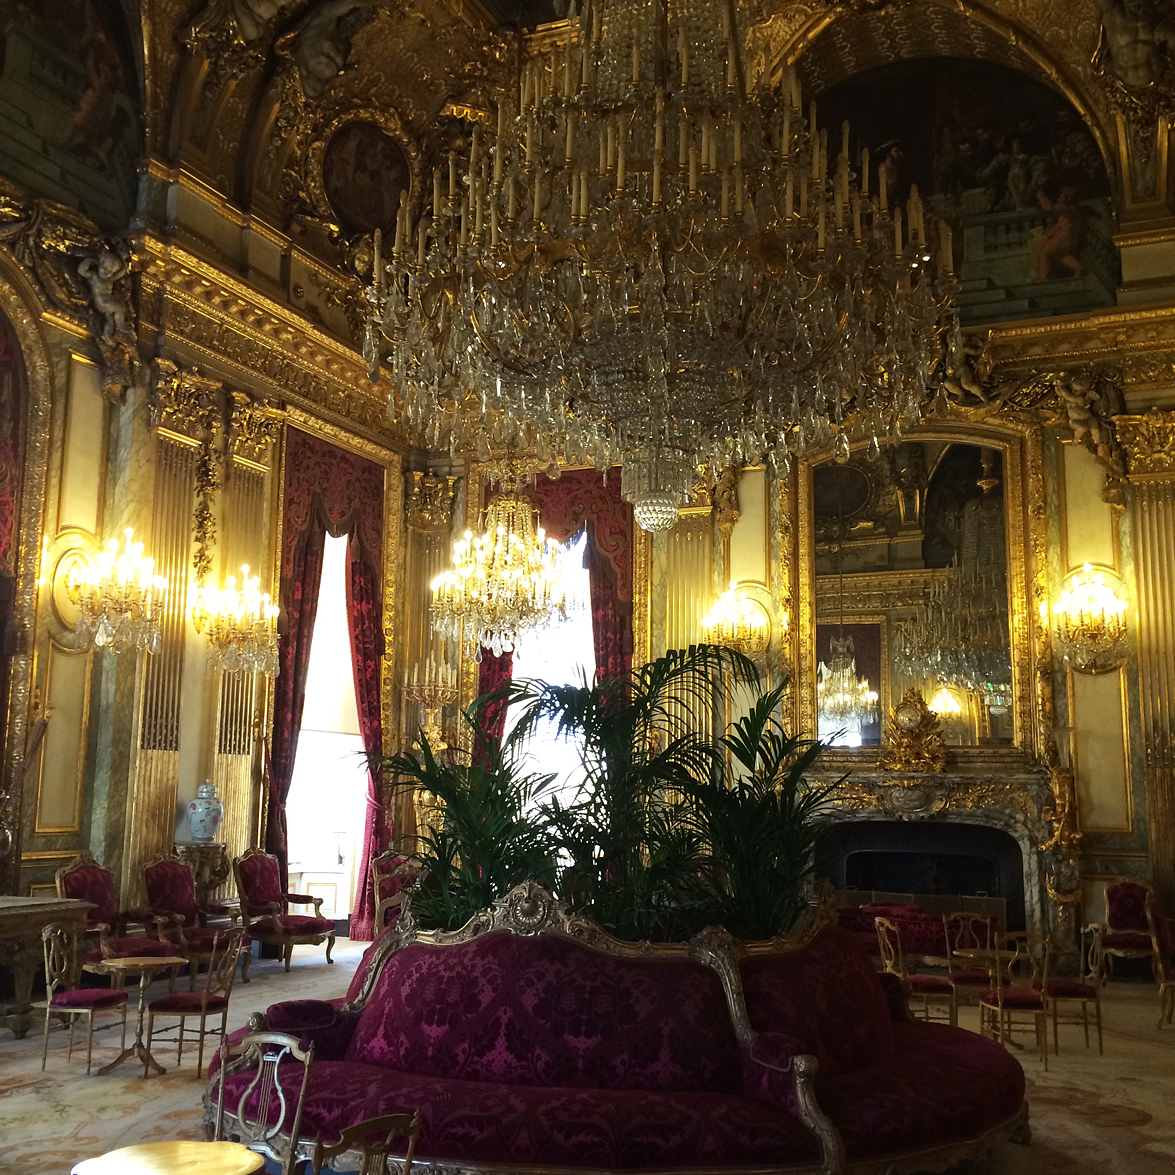 (above) The Grand Salon. The Napoleon III apartments, which served as the Ministry of State, were built in 1861 in the Aile Richelieu along the Rue de Rivoli.